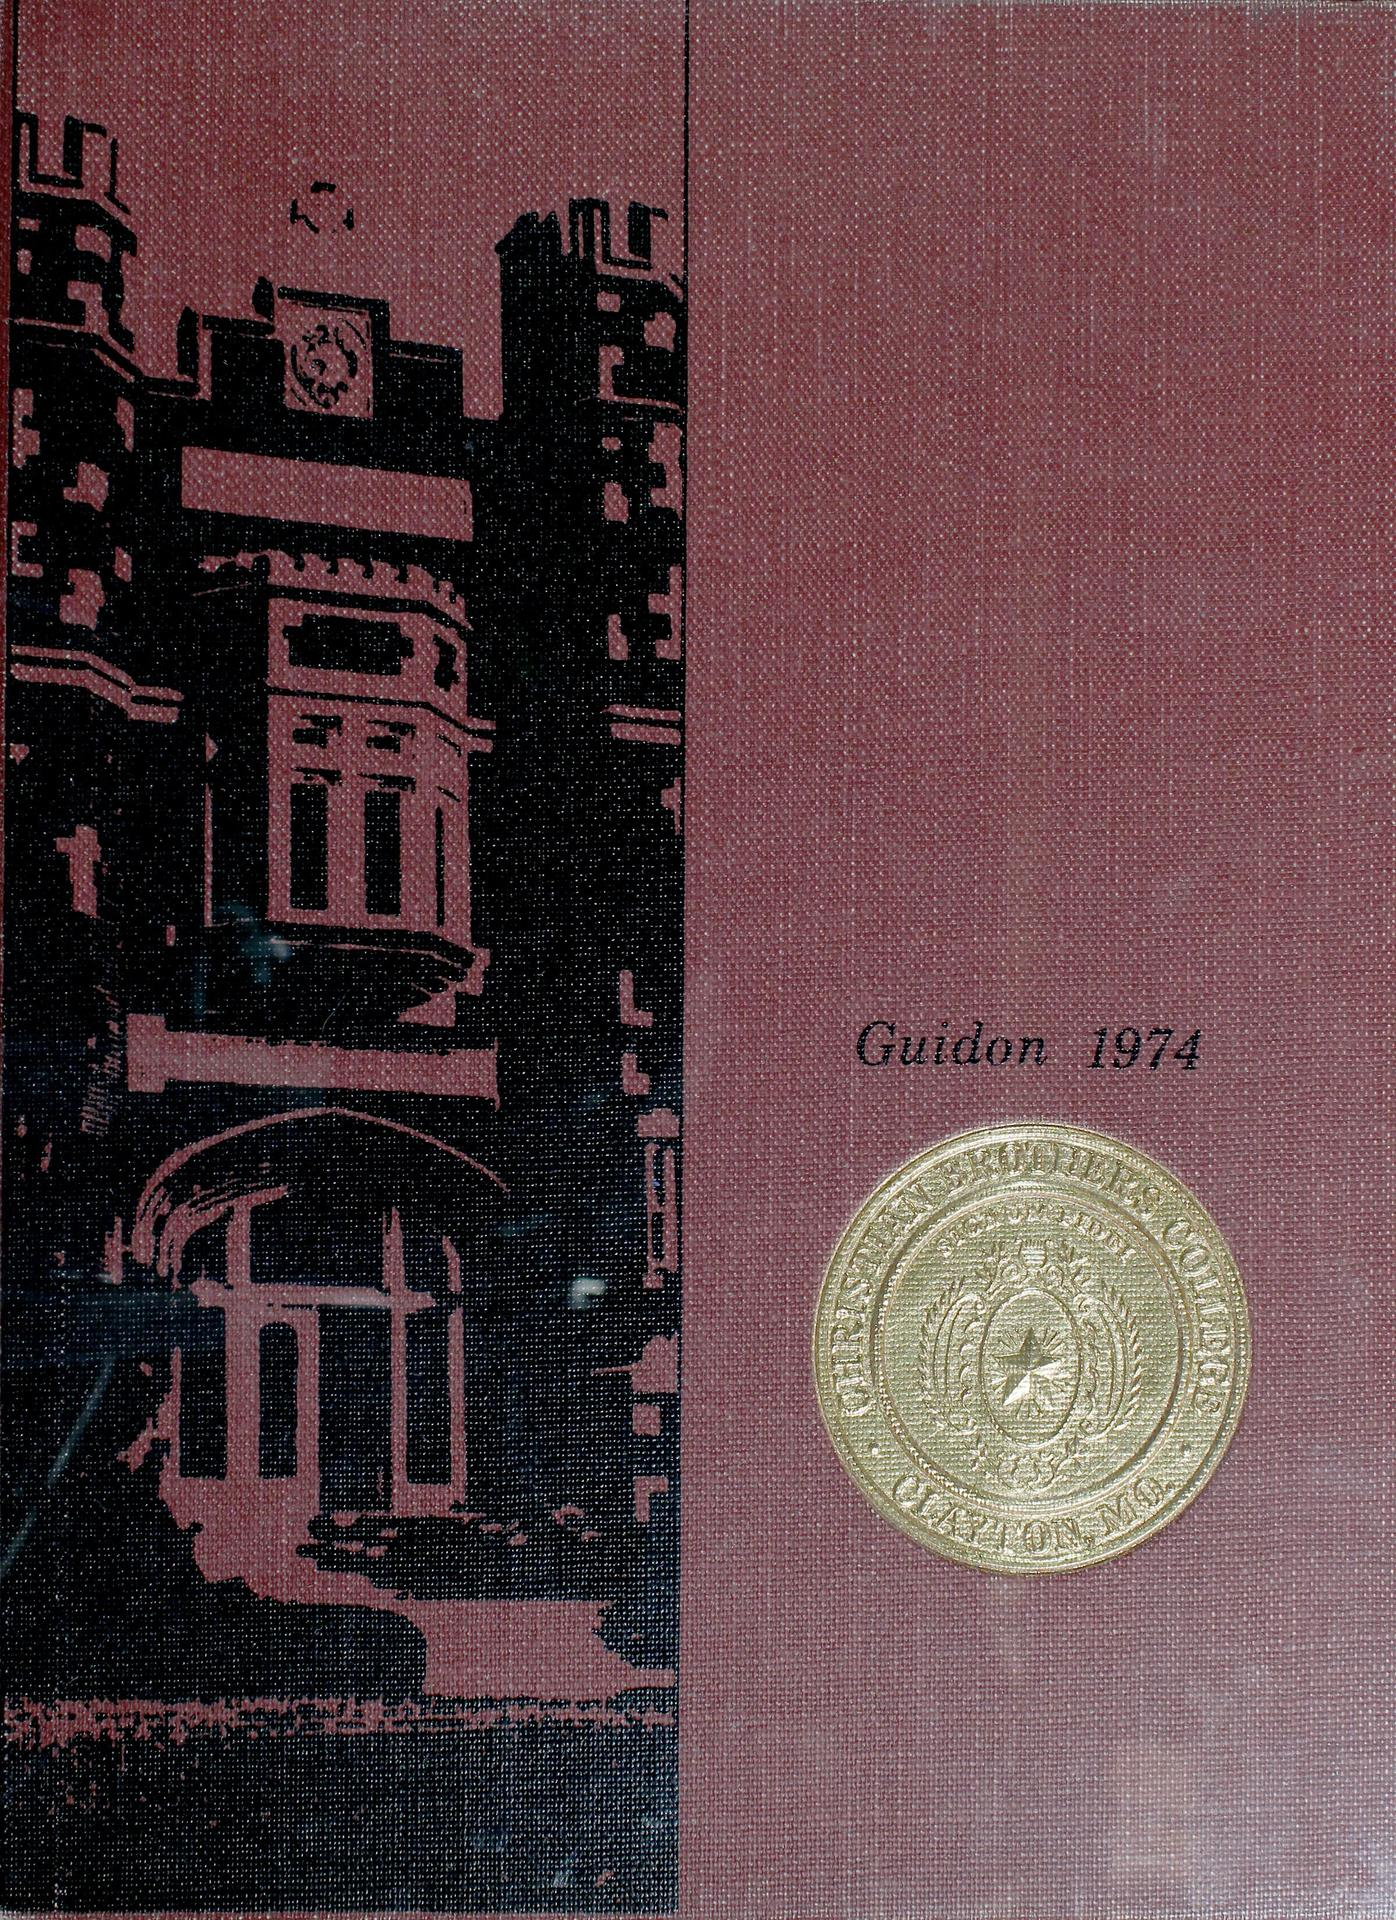 1974 CBC Yearbook